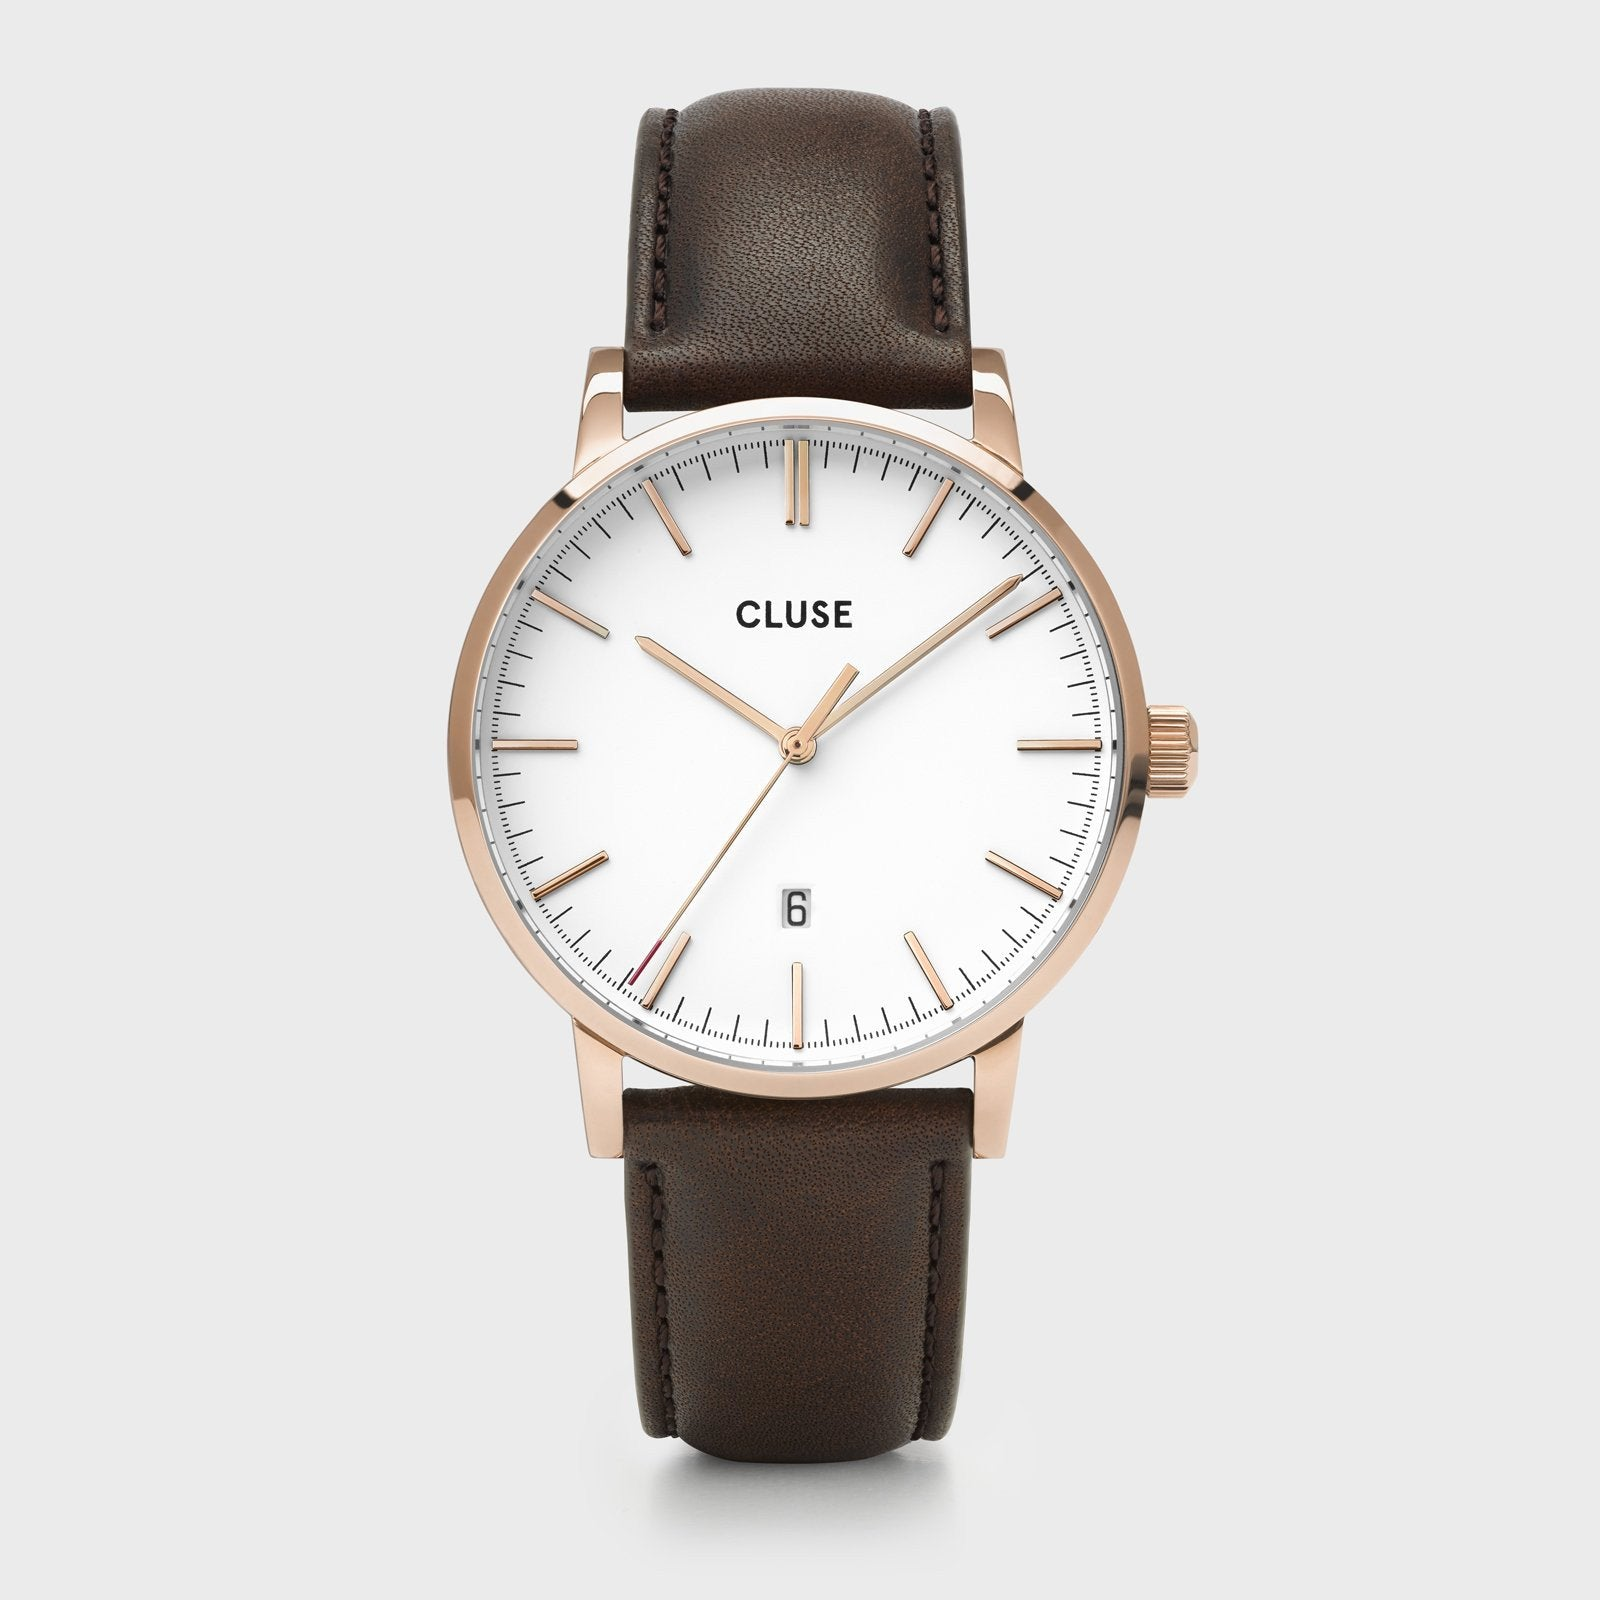 CLUSE Aravis leather rose gold white/dark brown CW0101501002 - Watch